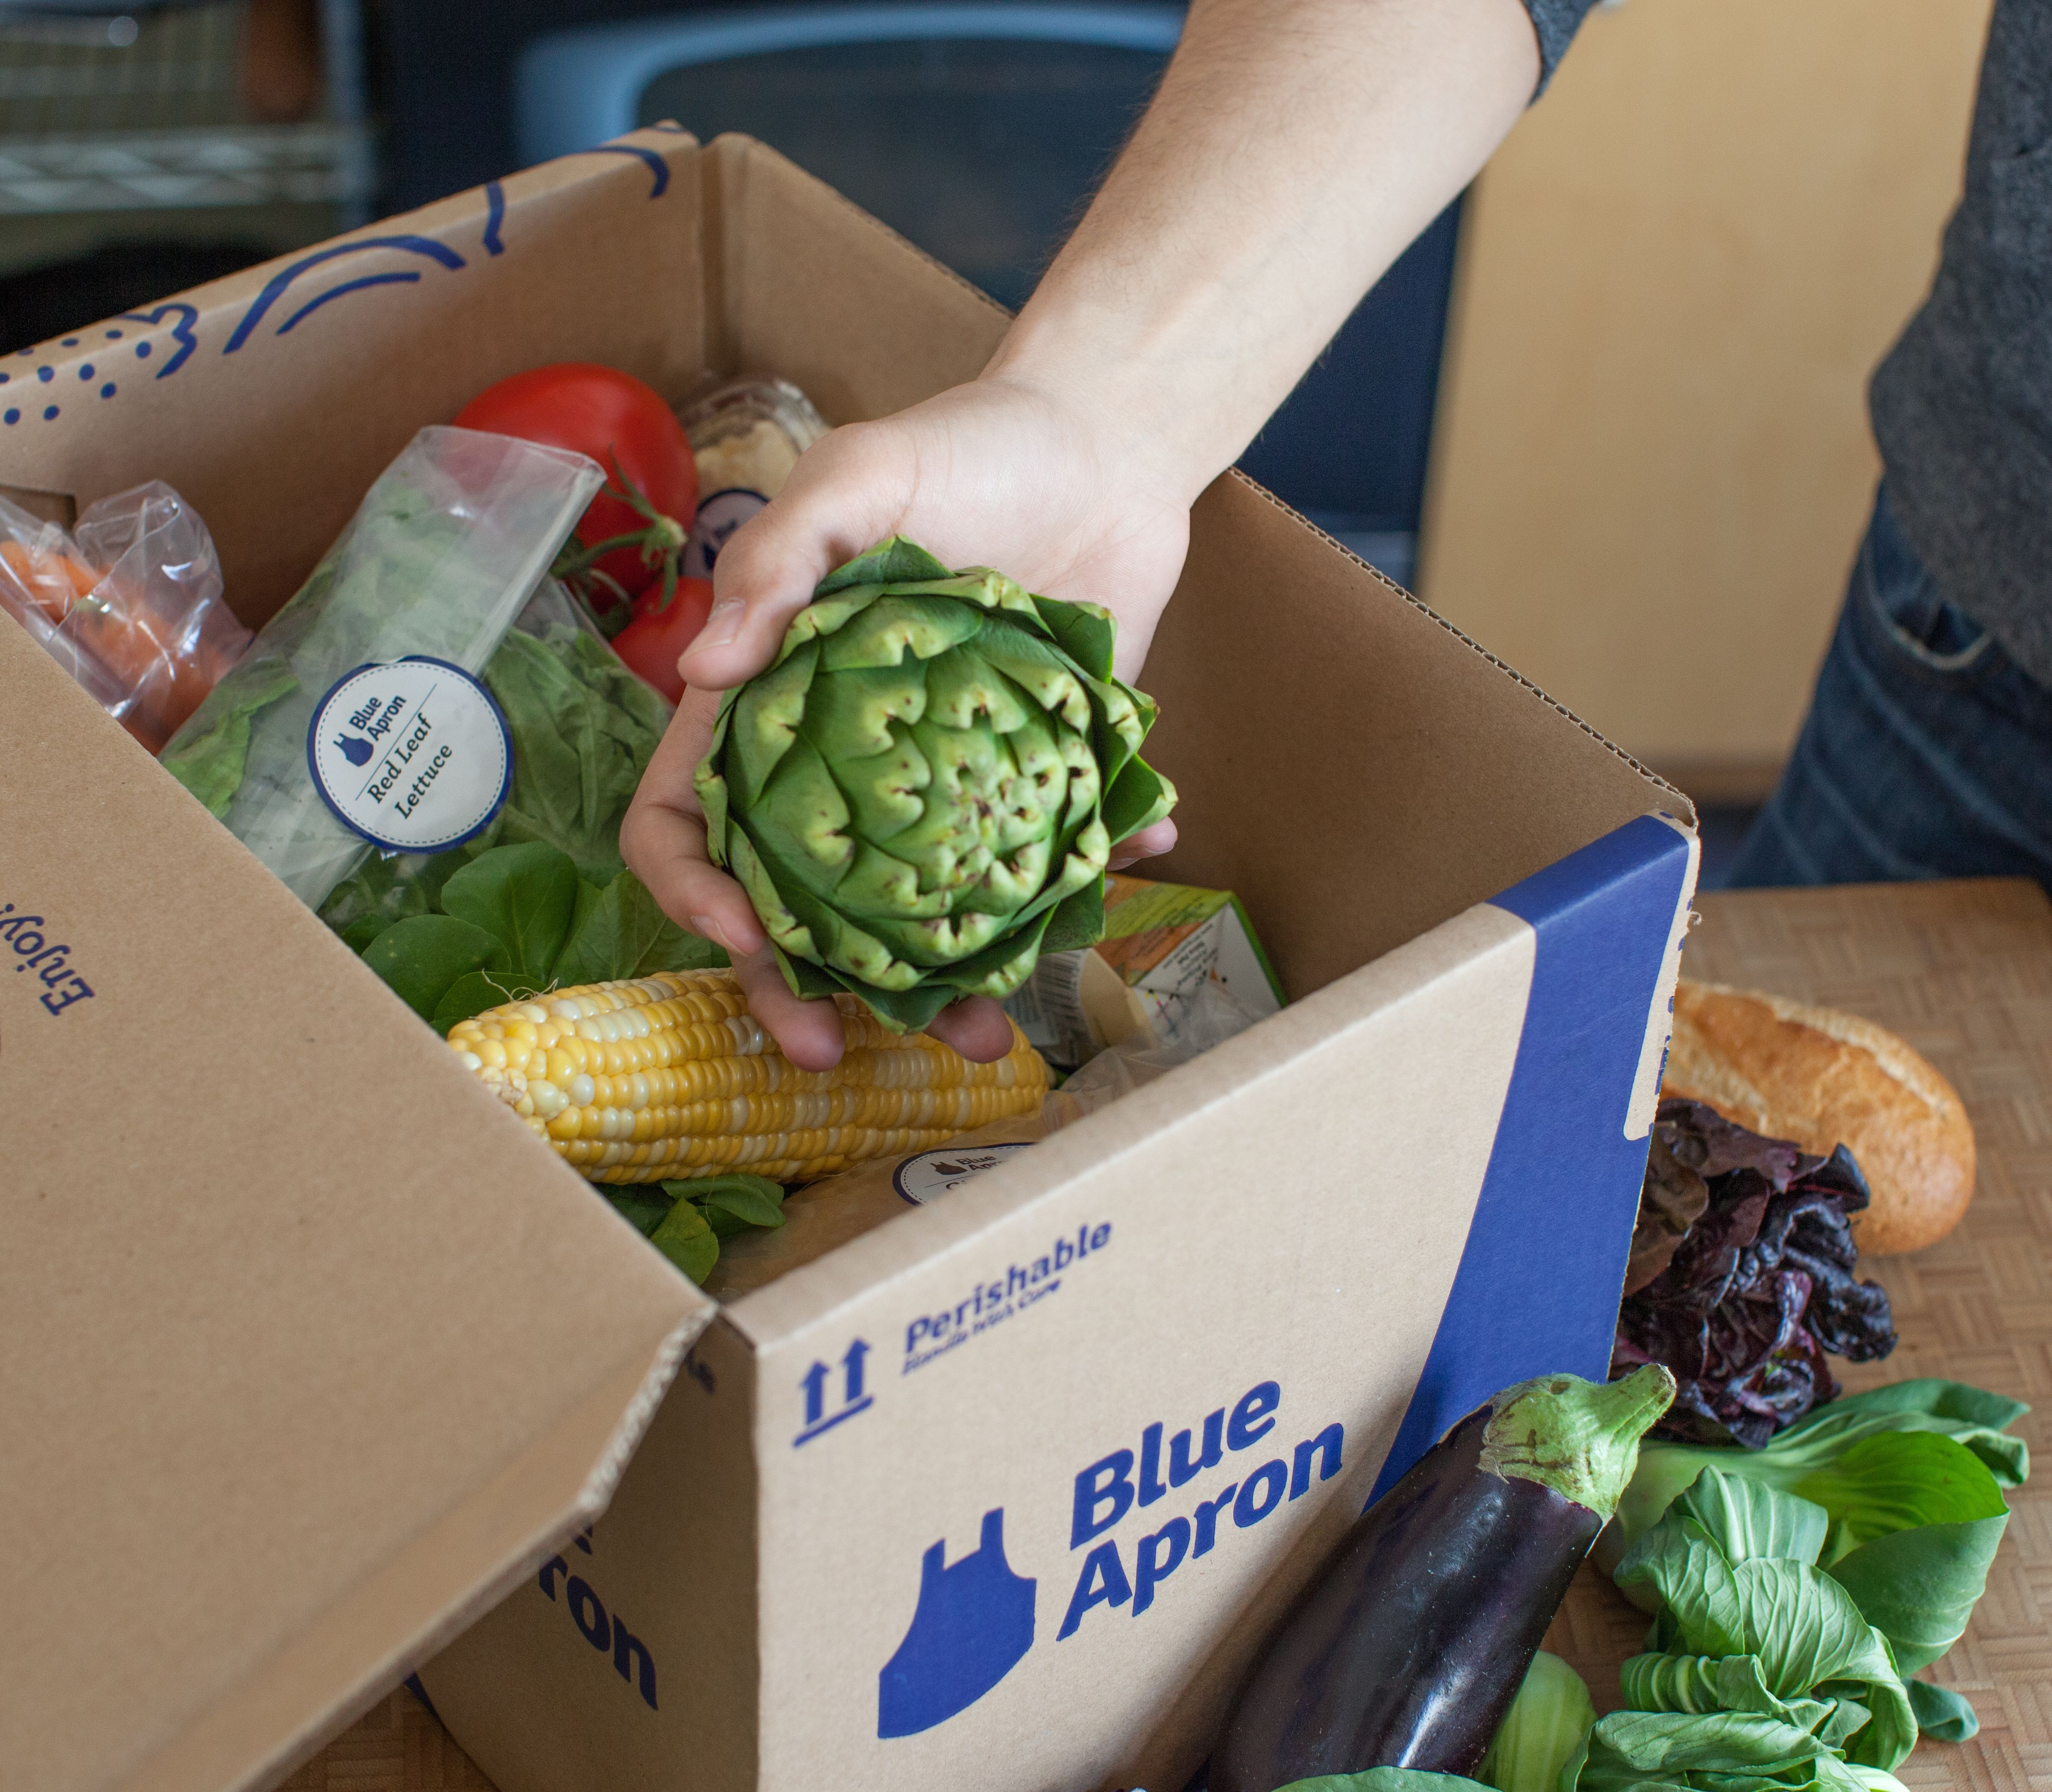 Blue apron healthy meals - We Tried Blue Apron Here S What Happened